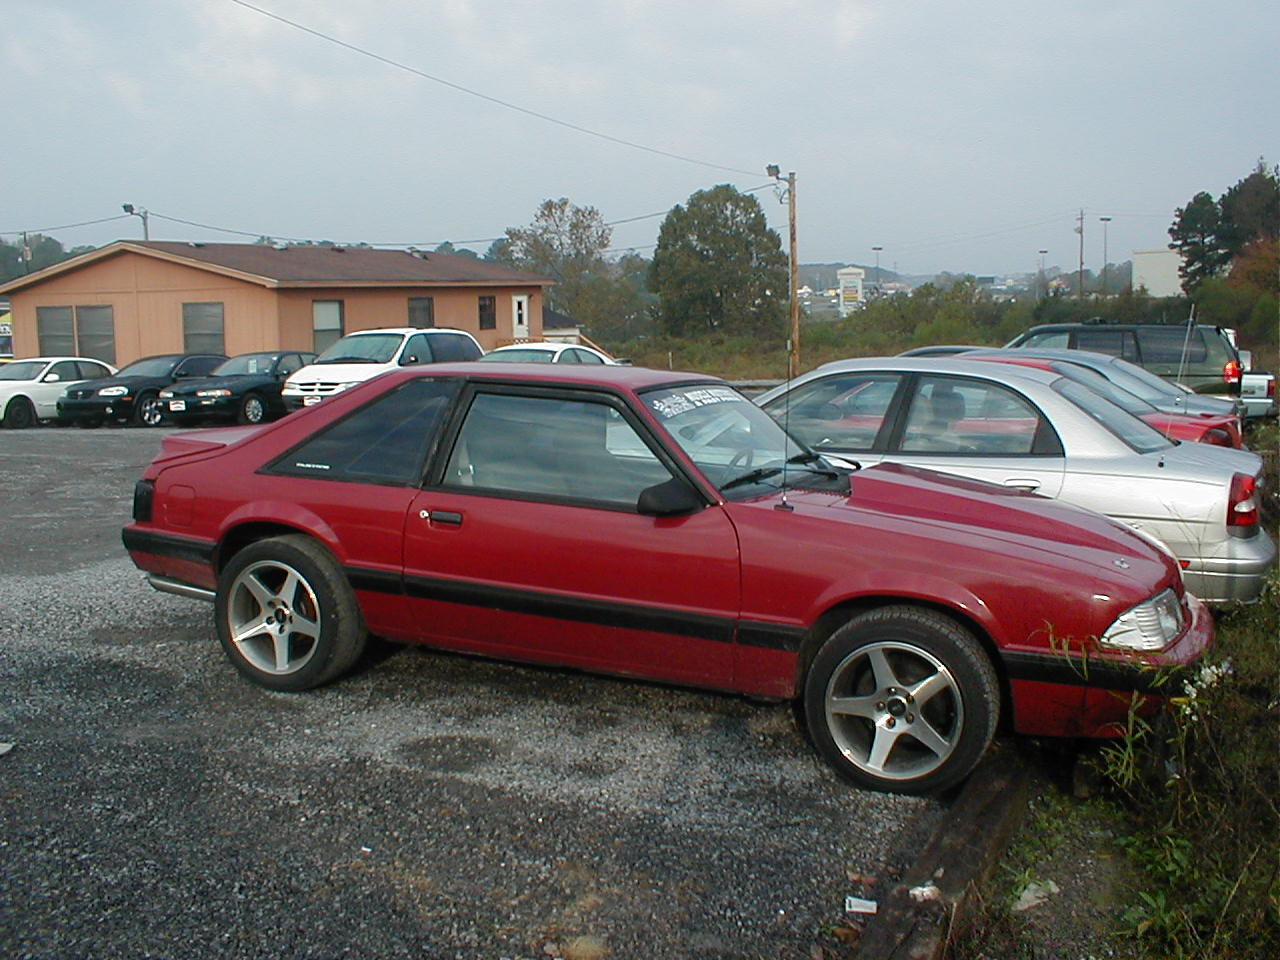 1989 ford mustang lx picture mods upgrades